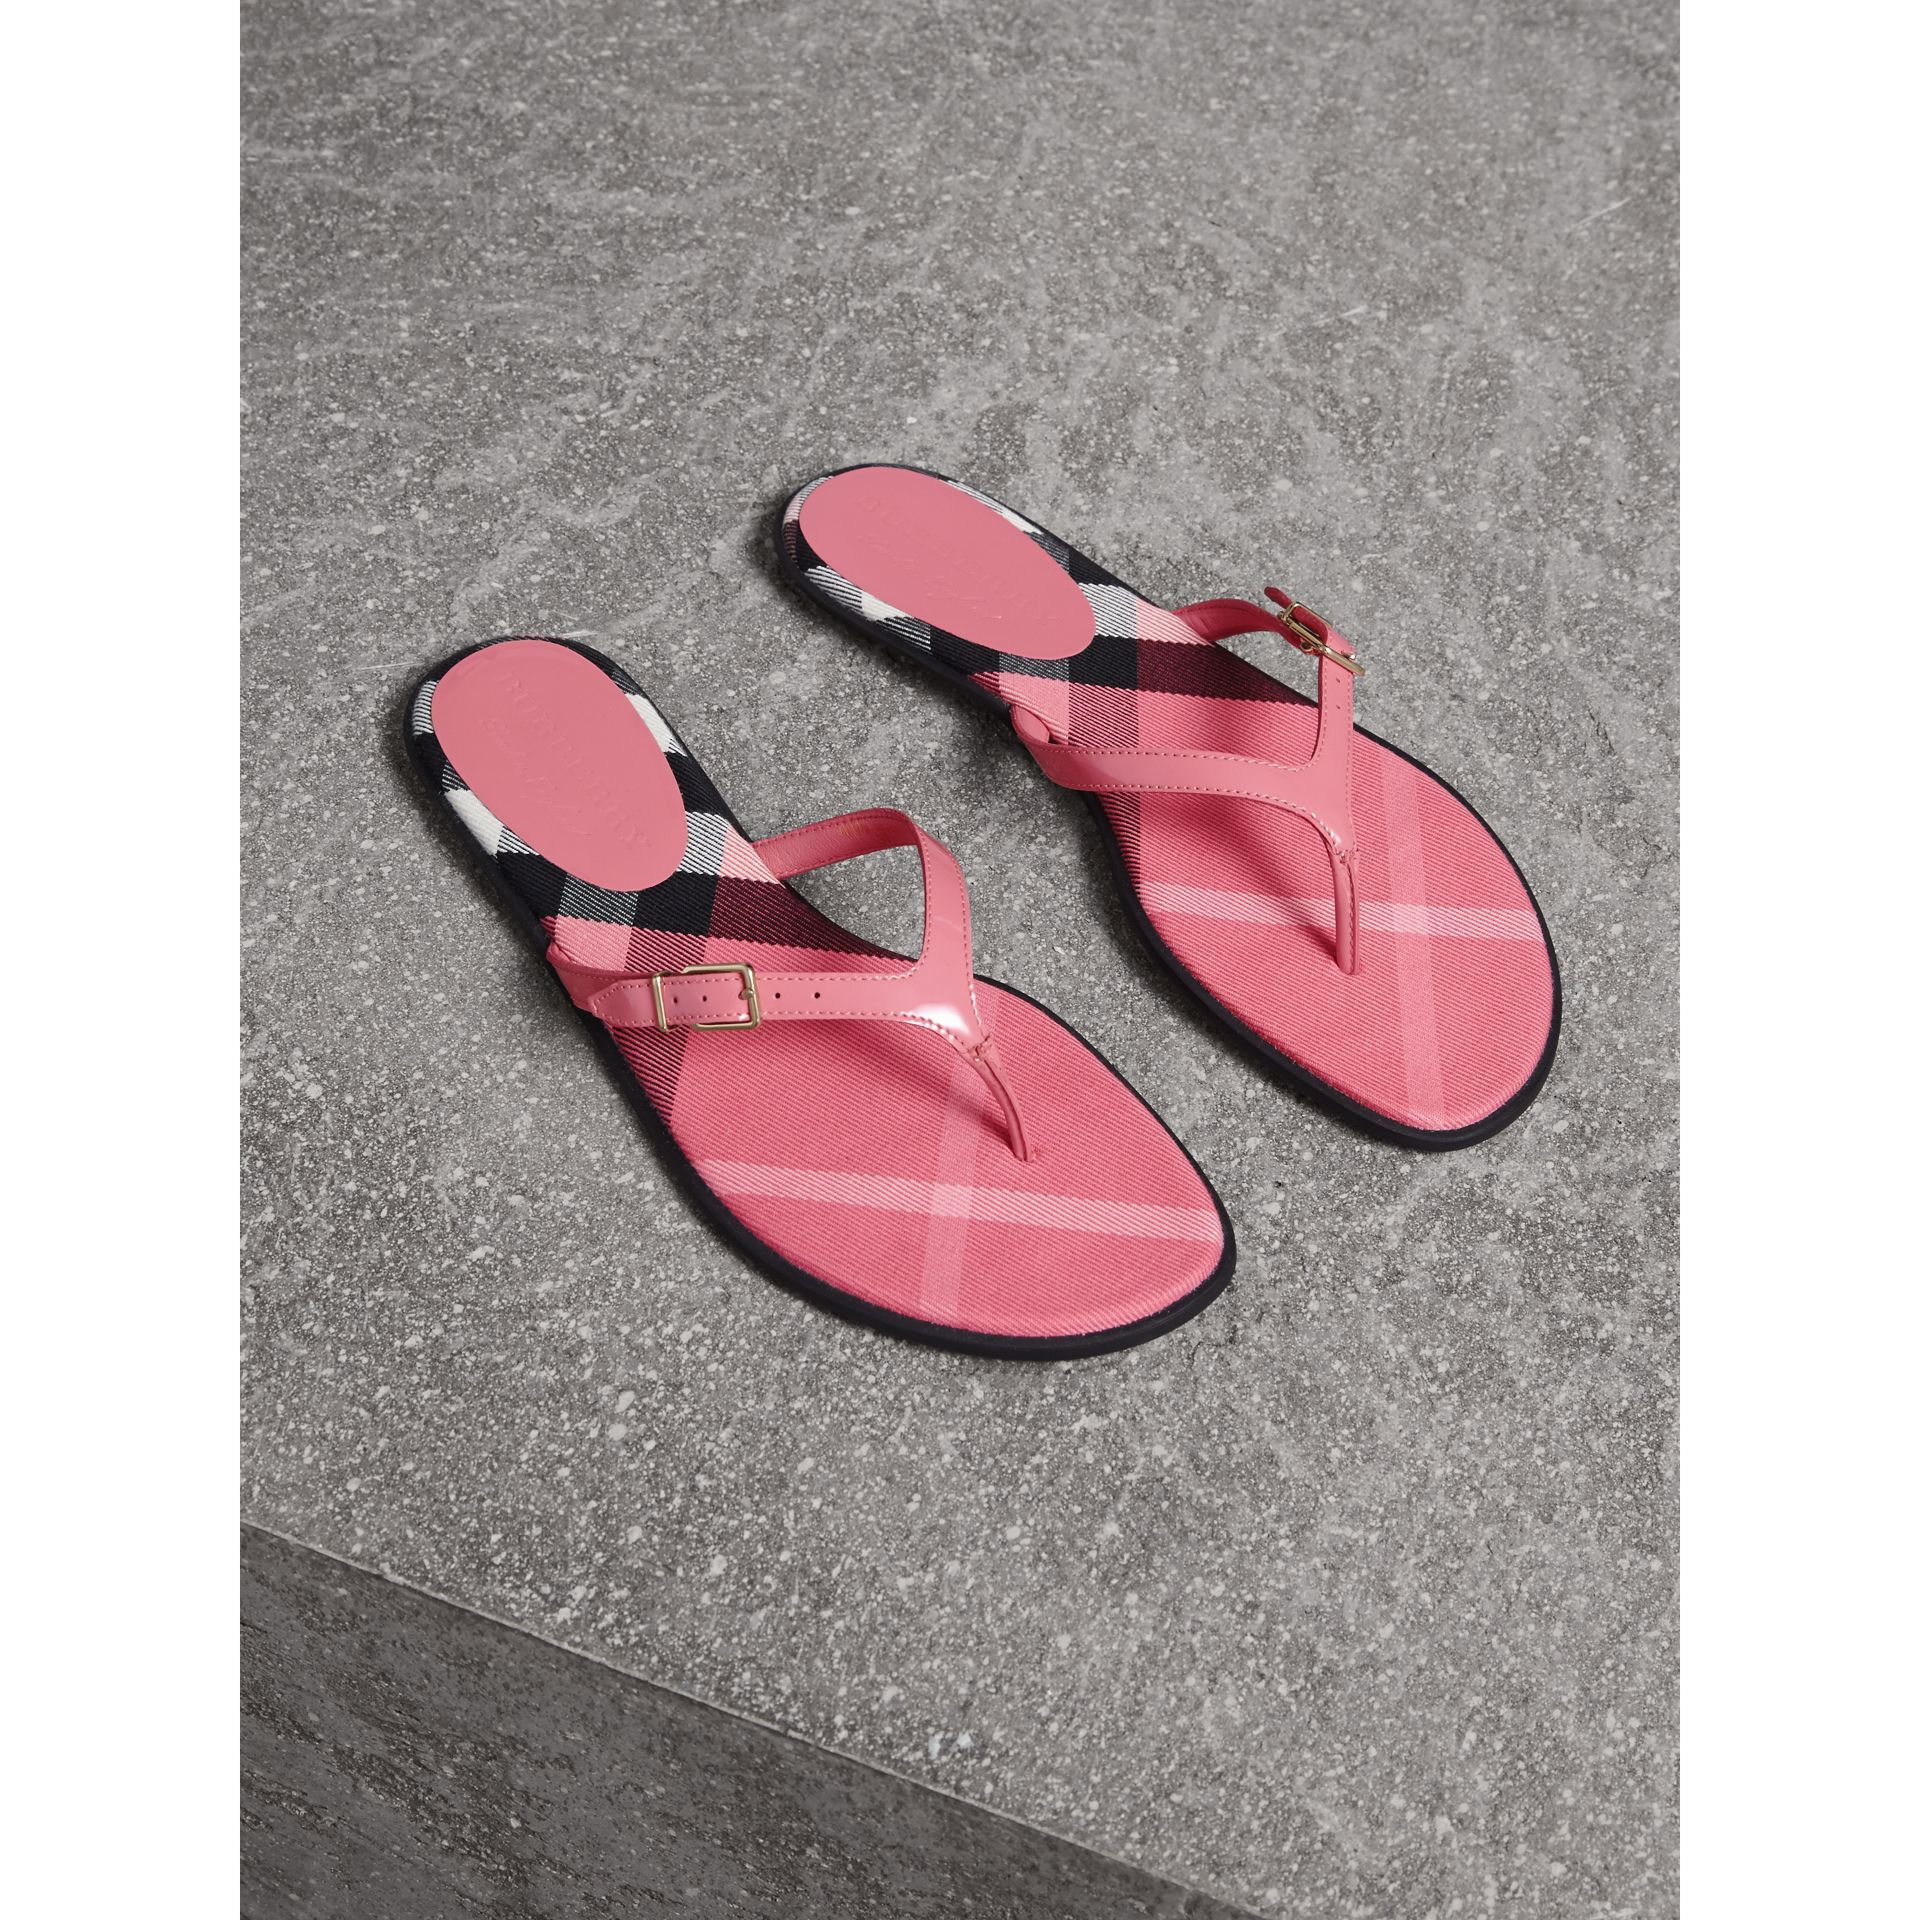 House Check and Patent Leather Sandals in Berry Pink - Women | Burberry United Kingdom - gallery image 1